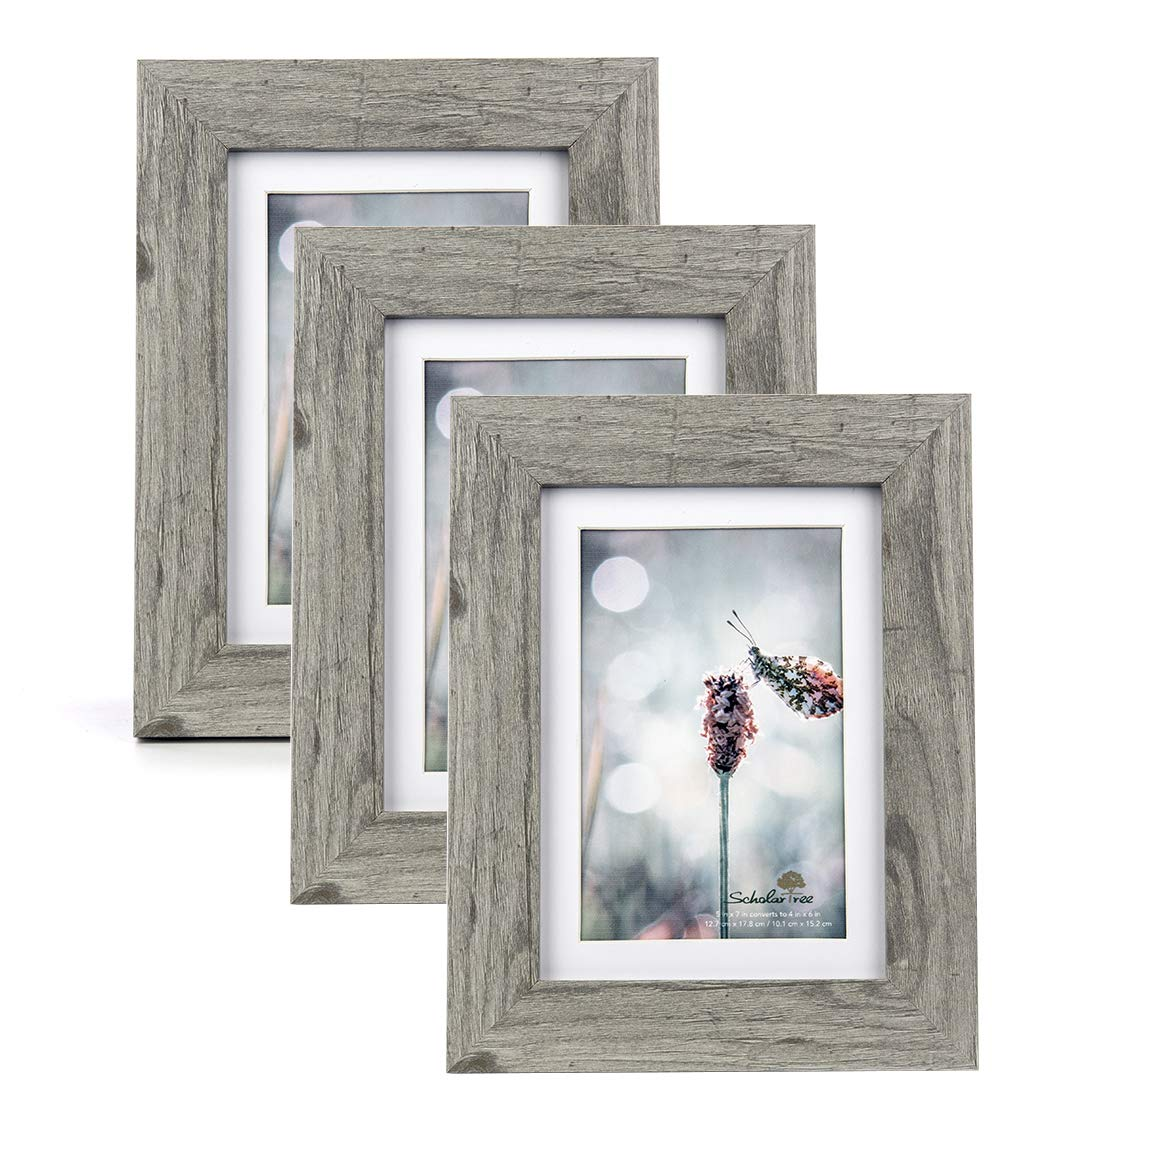 Scholartree Wooden Photo Picture Frame 5x7 3P 8x10 2P 11x14 2P (Style 2, 5x7 inches 3P) by Scholartree (Image #2)